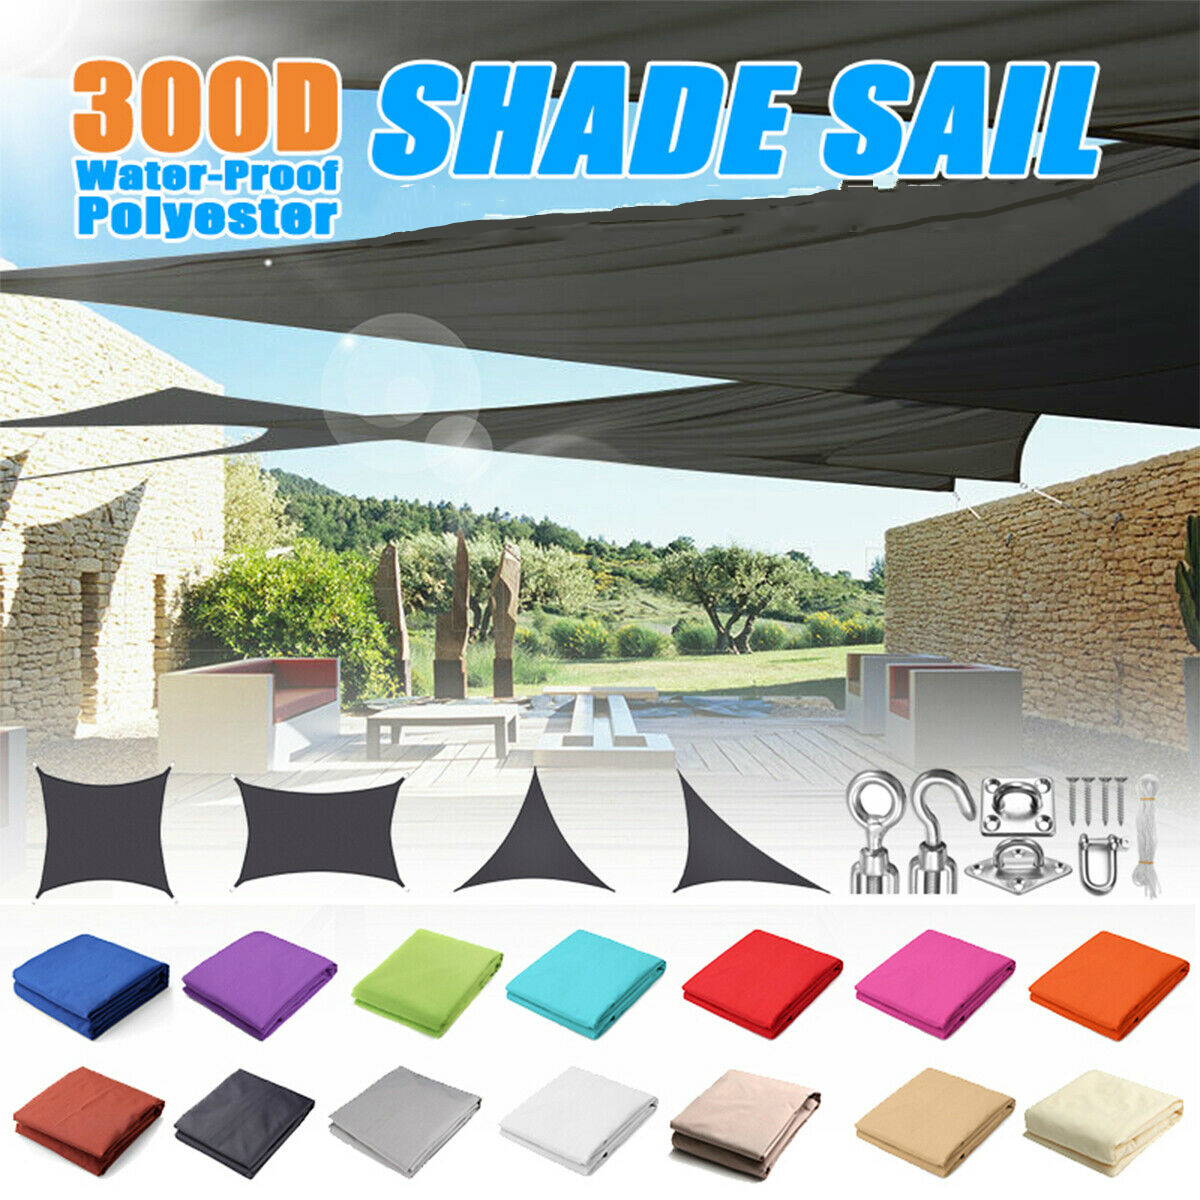 Summer Shade Sail 300D Square Rectangle Waterproof UV-resistant Outdoor Garden Terrace Pool Shade Cloth Camping Yard Sail Awning